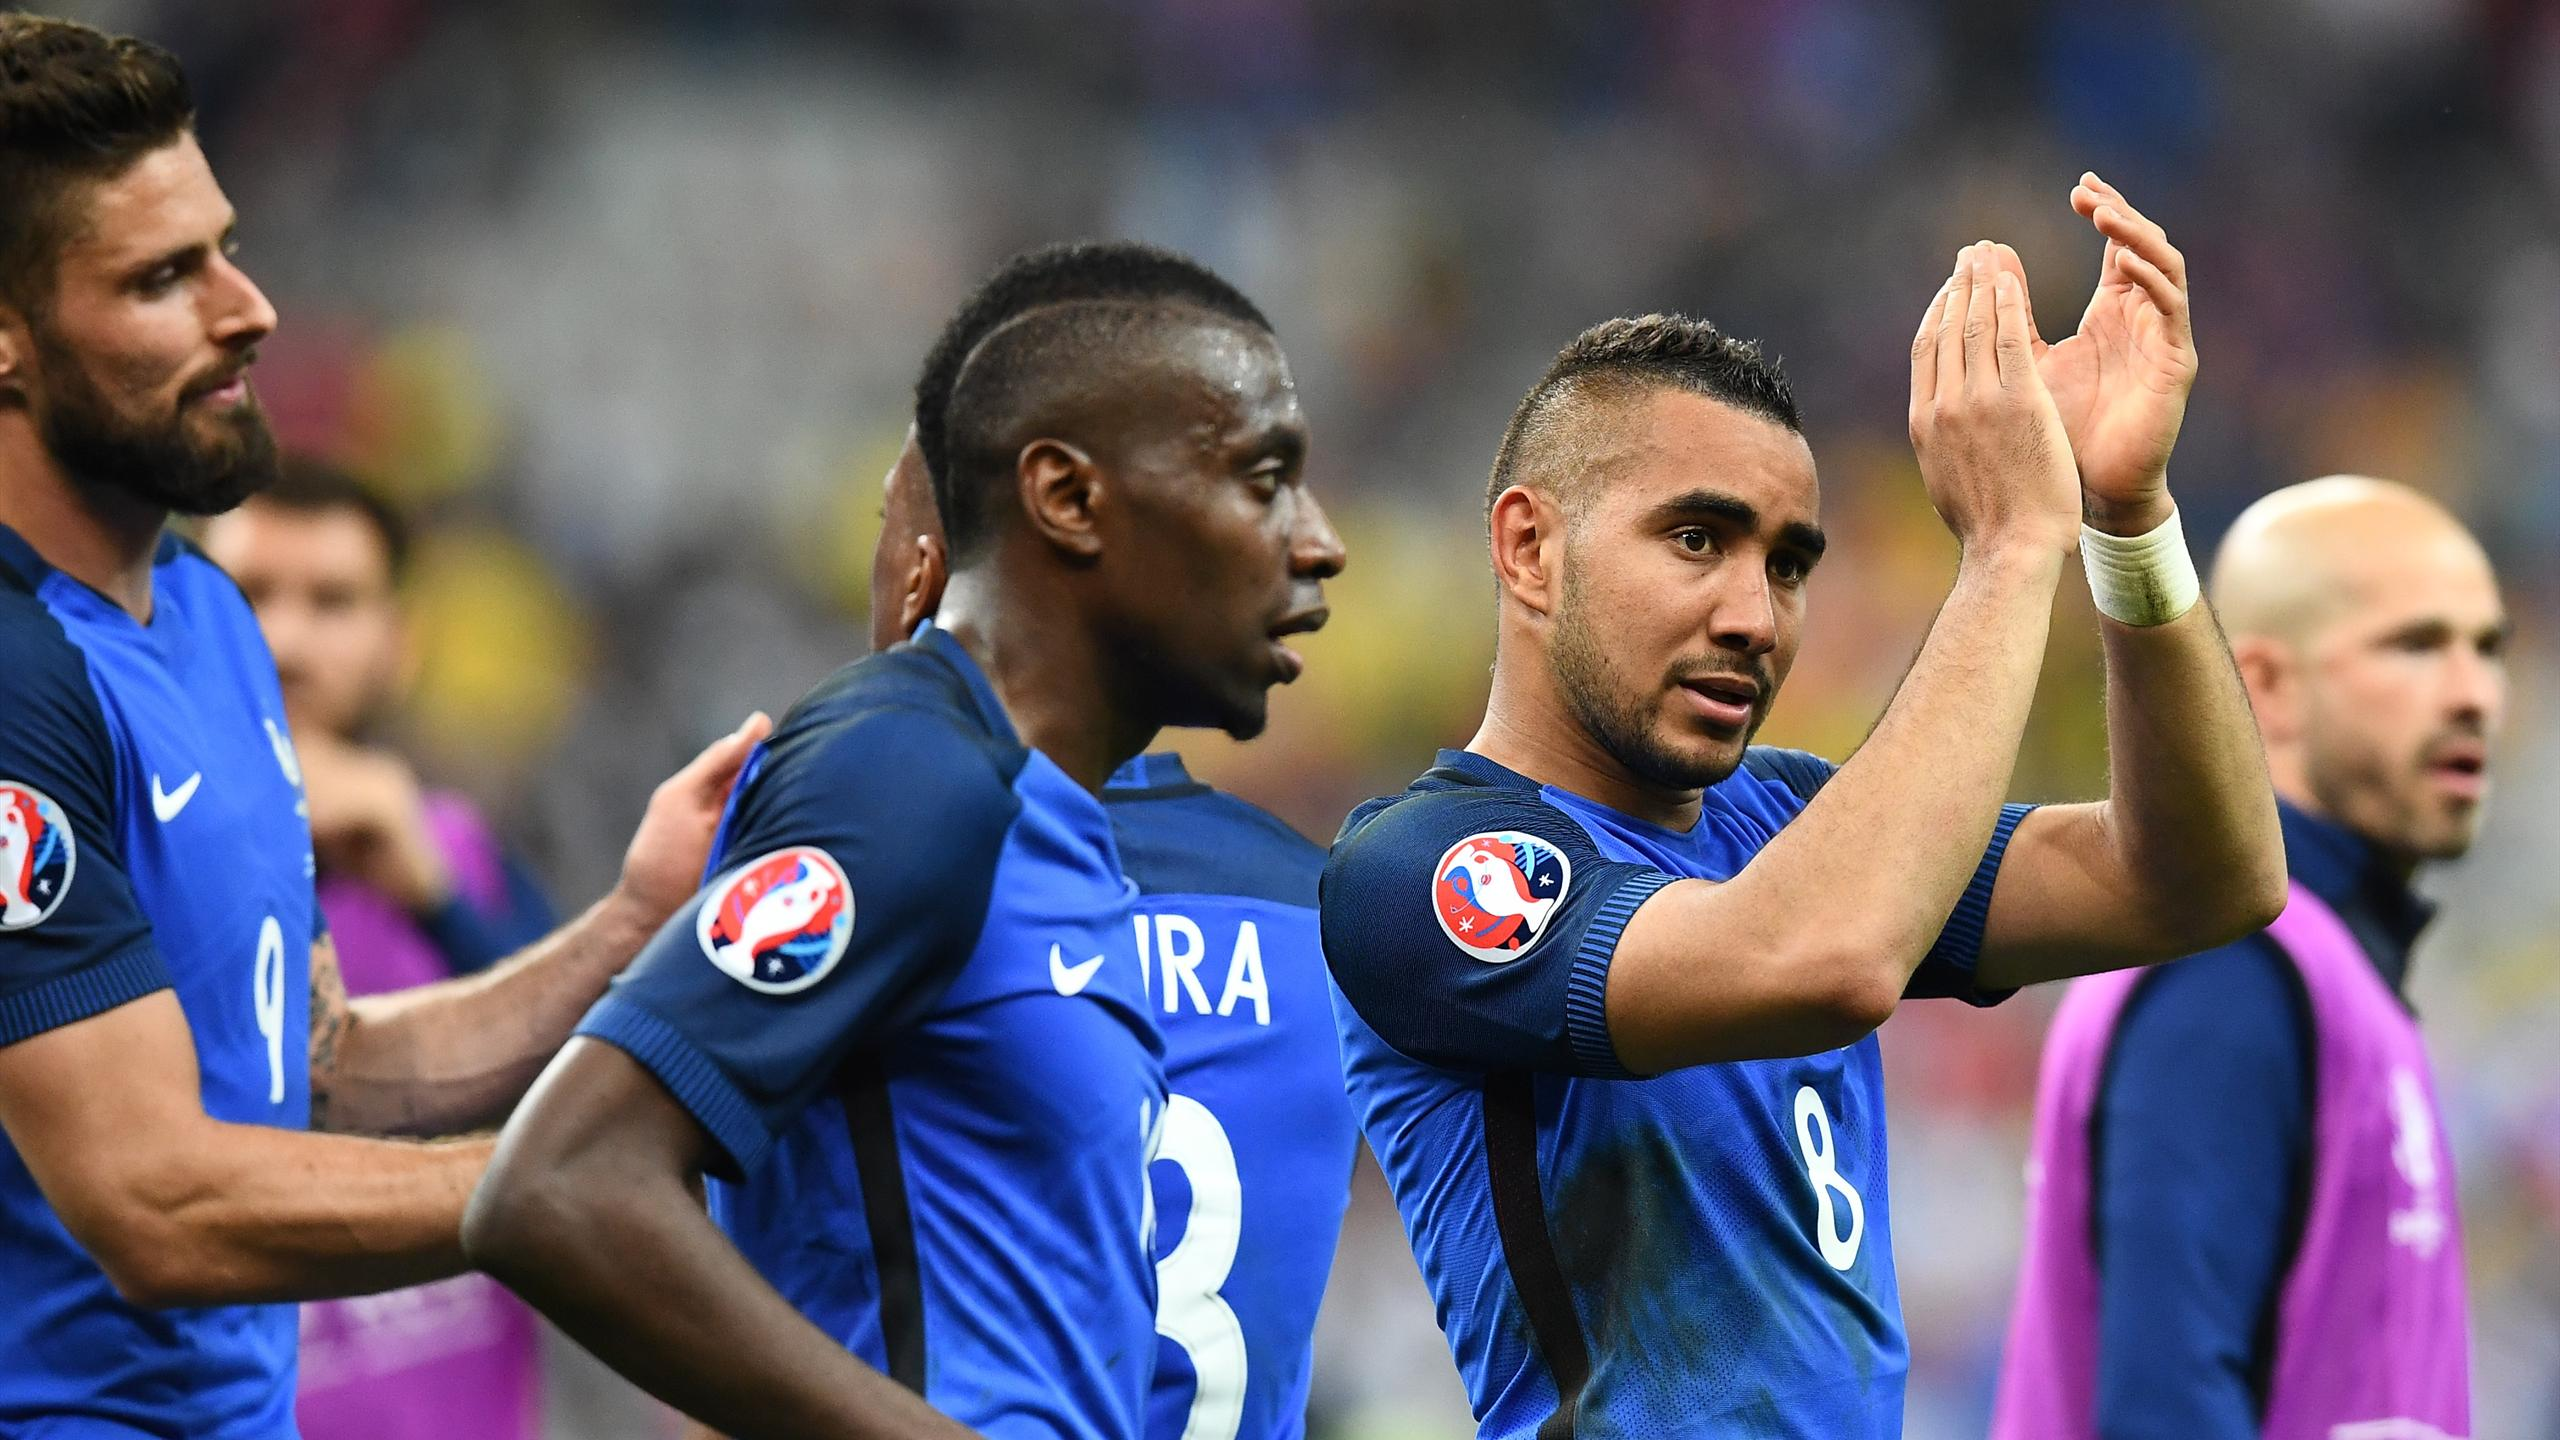 France's forward Dimitri Payet (R) and his teammates celebrate after the Euro 2016 group A football match between France and Romania